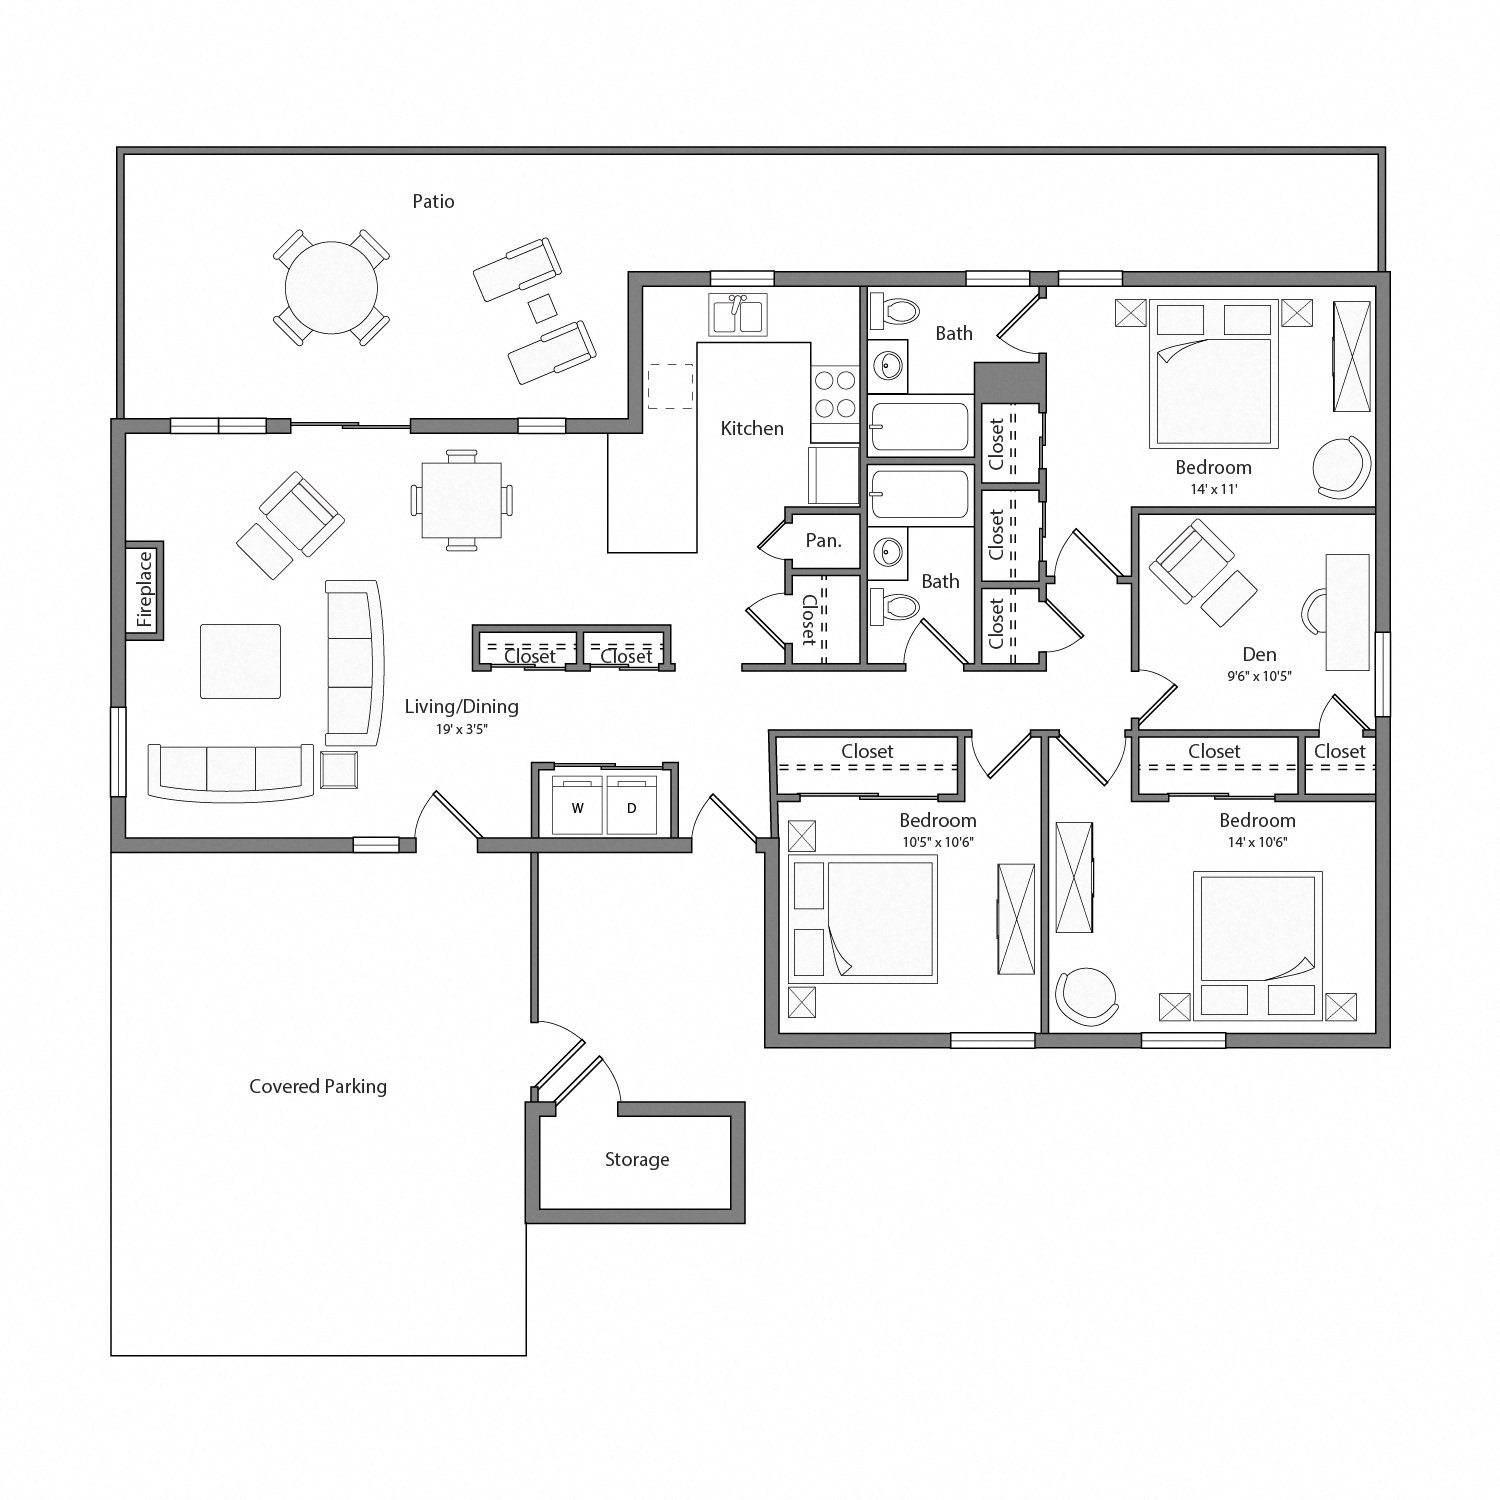 Willow house floor plan diagram. Three bedrooms, one den, two bathrooms, a kitchen, an open living and dining area with doors to a large patio, a laundry closet, and a covered parking area.